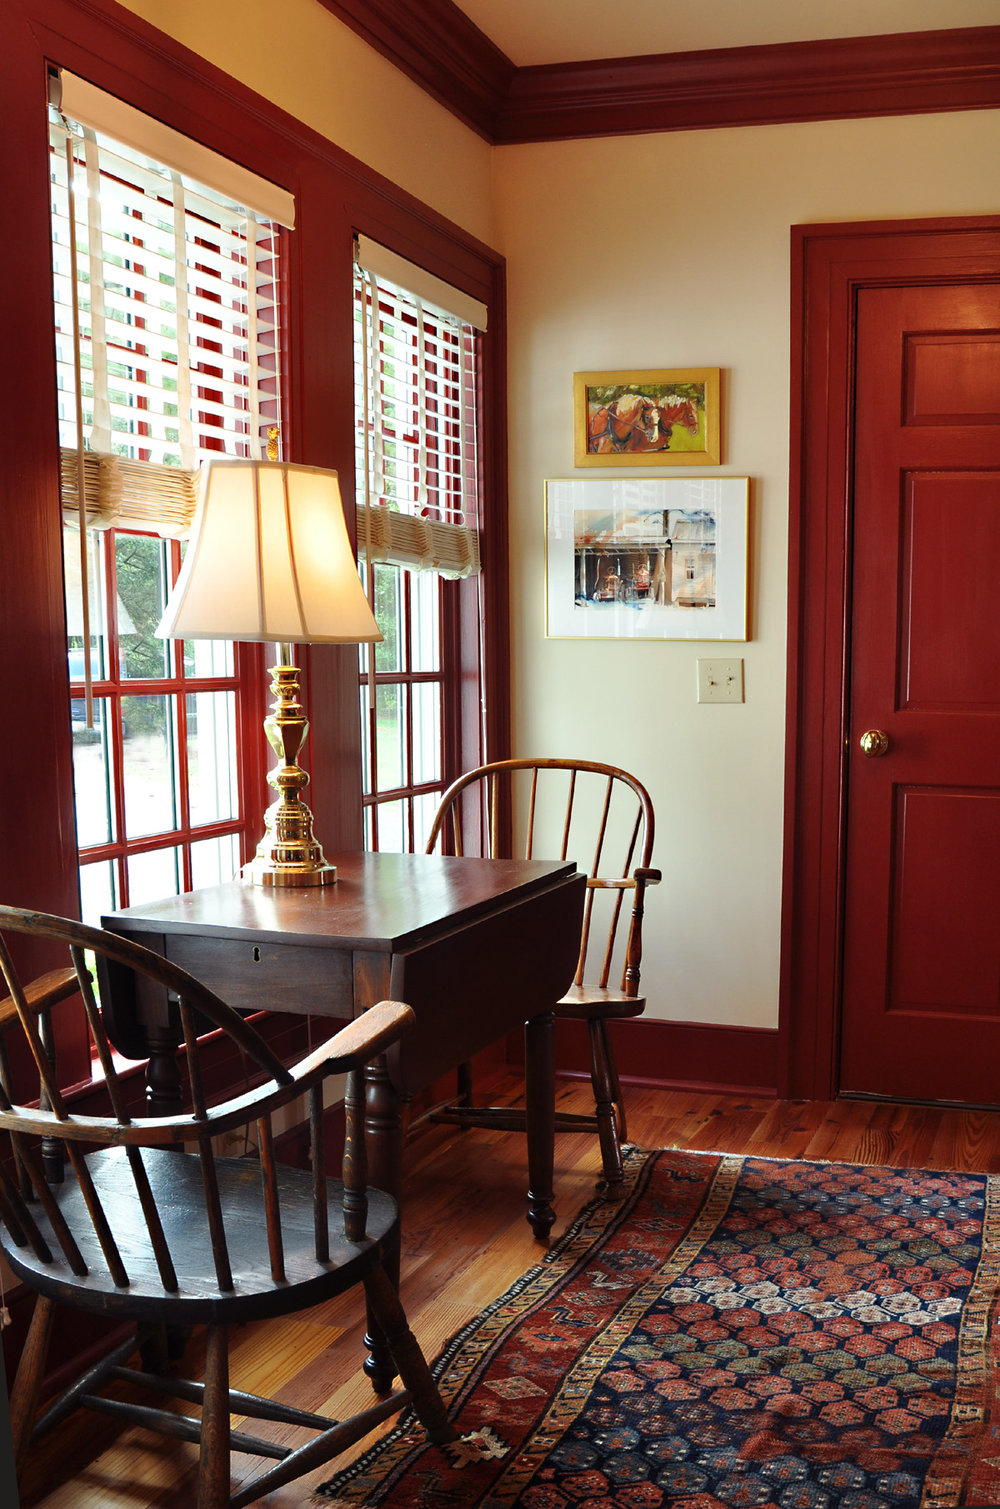 7. Eastern Shore 2019 Minton new wing anteroom.jpg